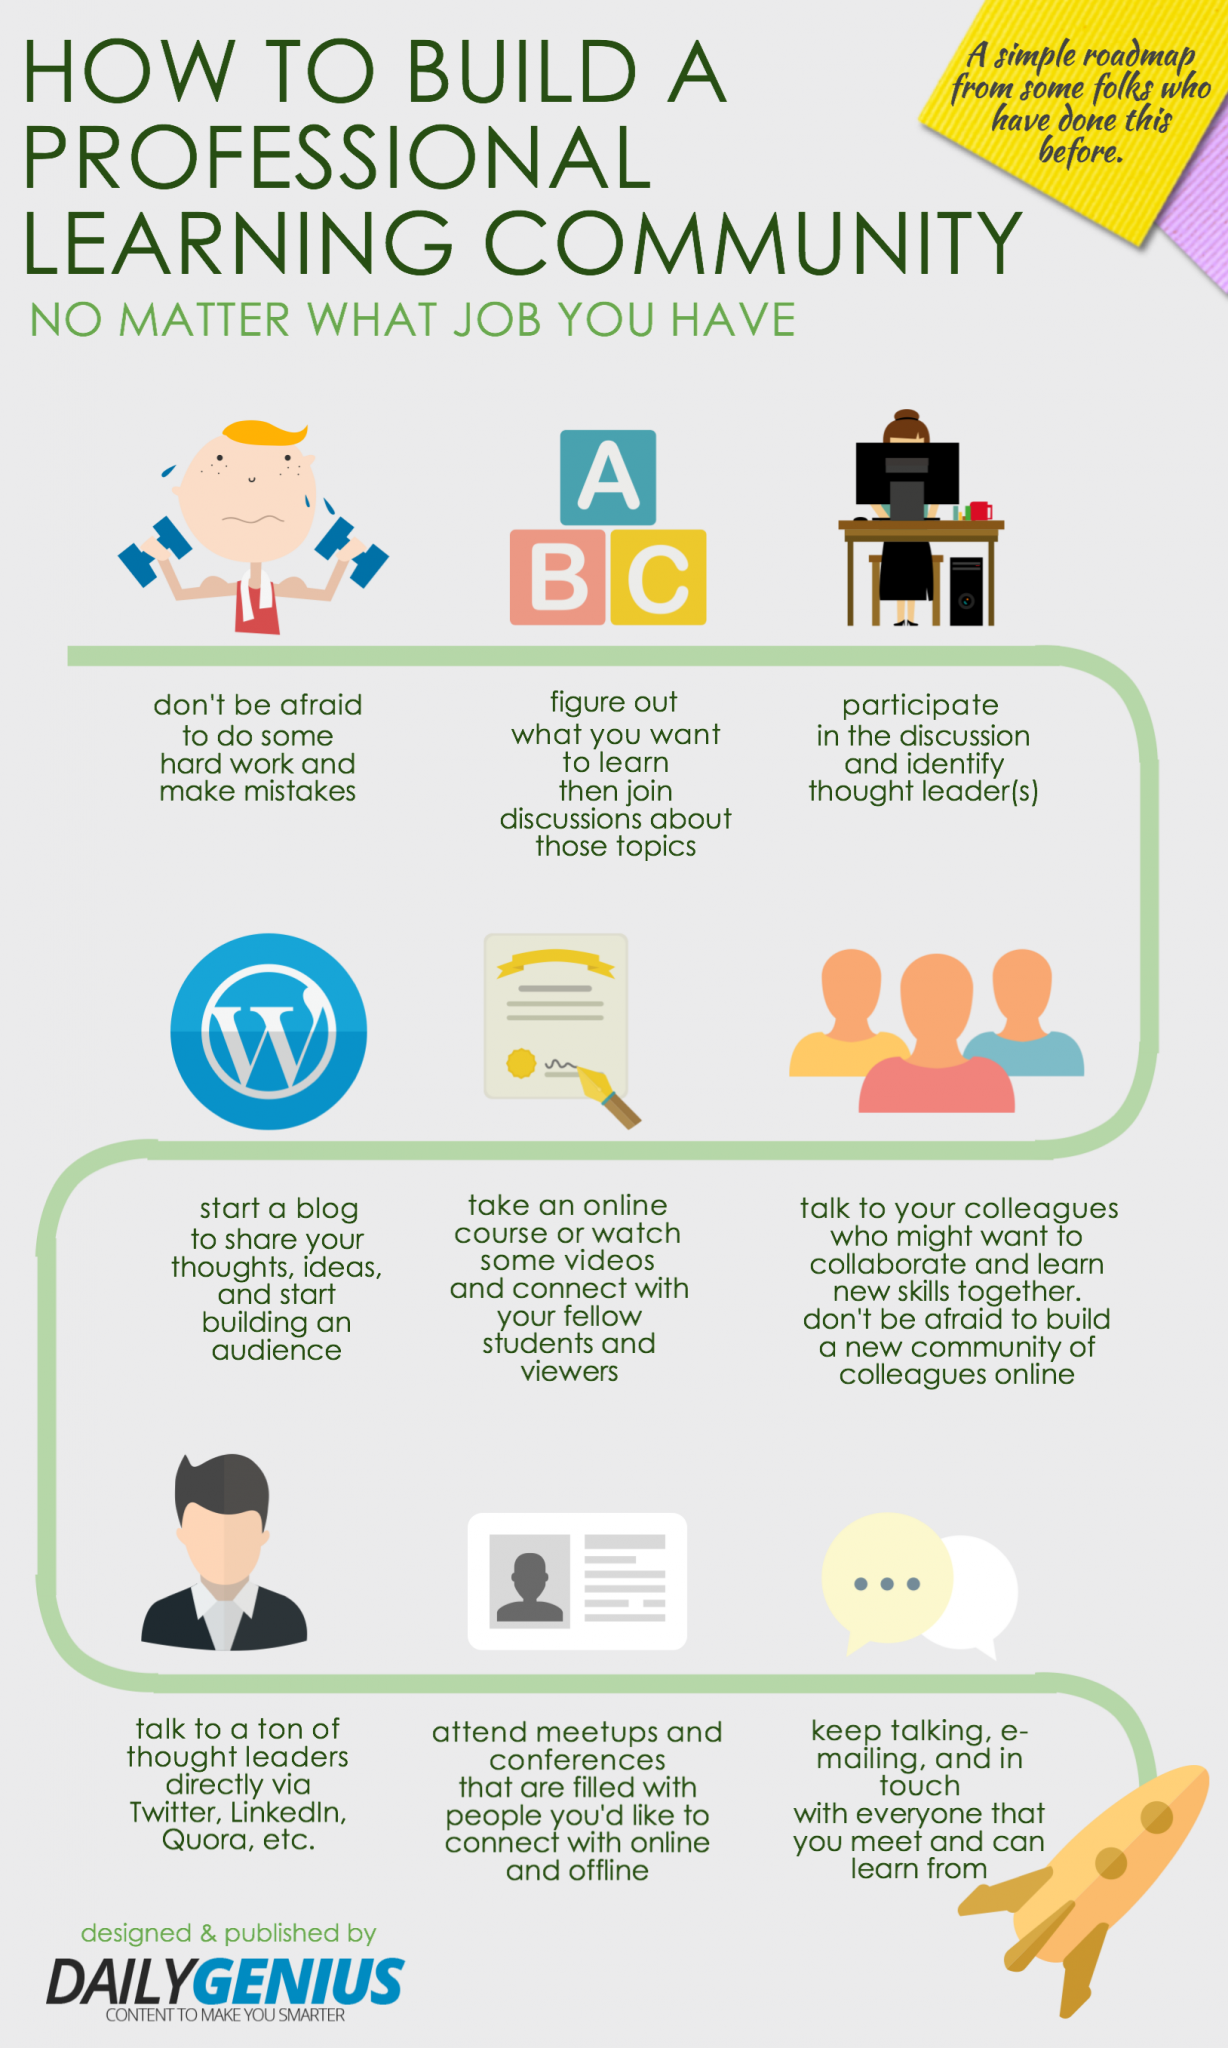 10 Tips To Build Your Professional Learning Community Infographic E Learning Infographics Professional Learning Communities Professional Learning Network Professional Learning